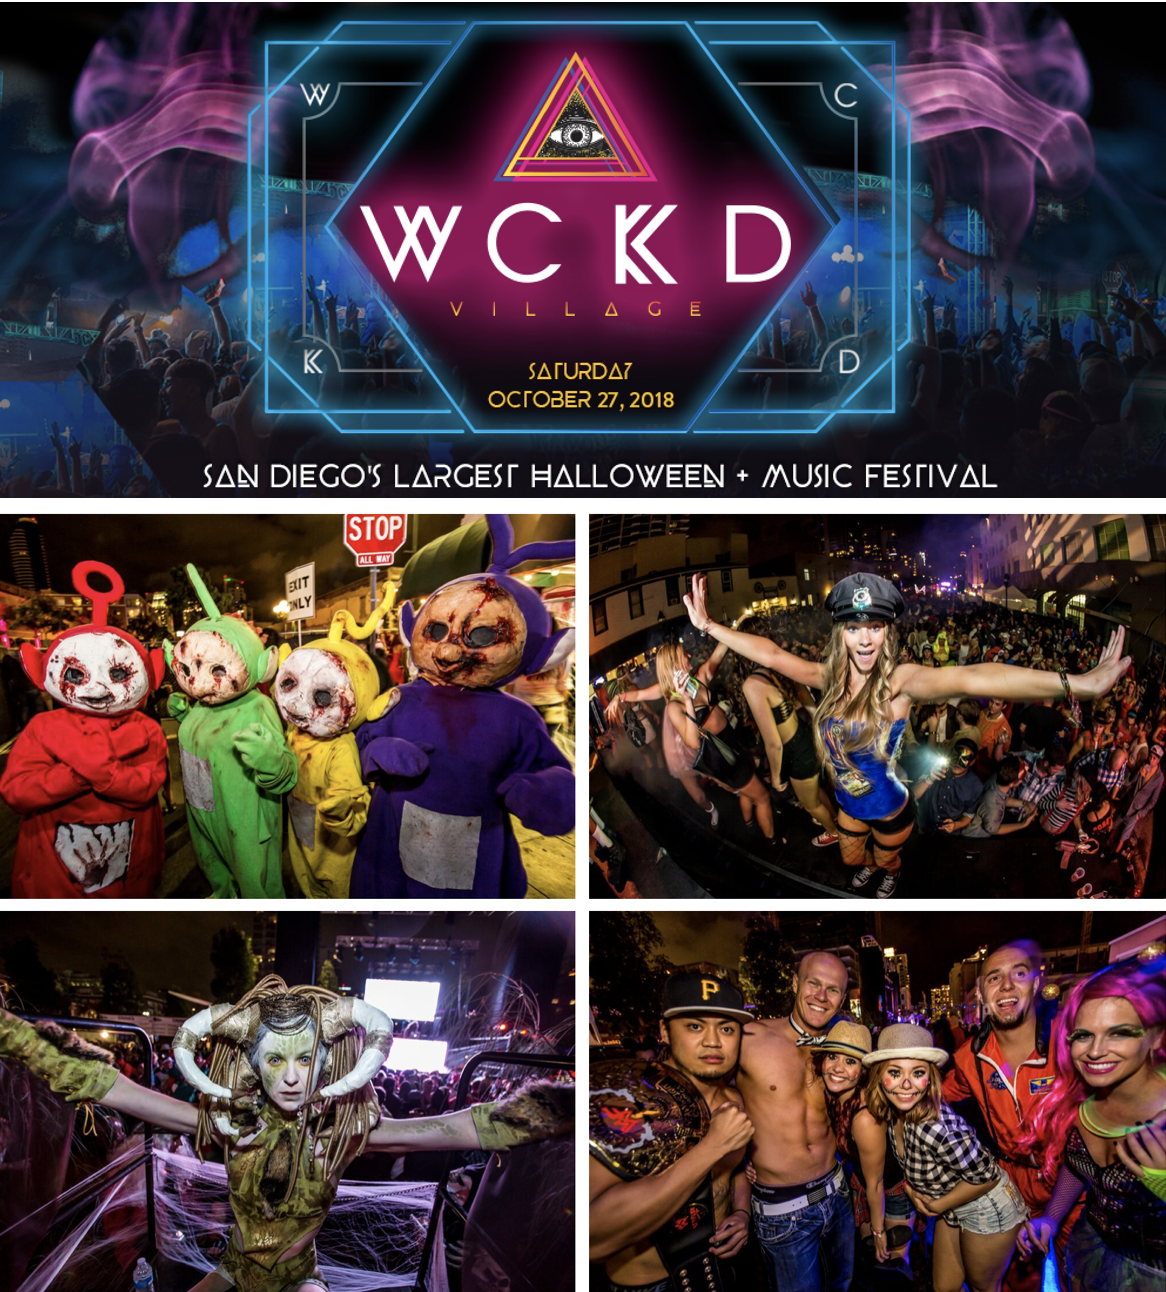 Save On Passes & Enter To Win VIP Tickets to WCKD Village, San Diego's Largest Halloween Party!